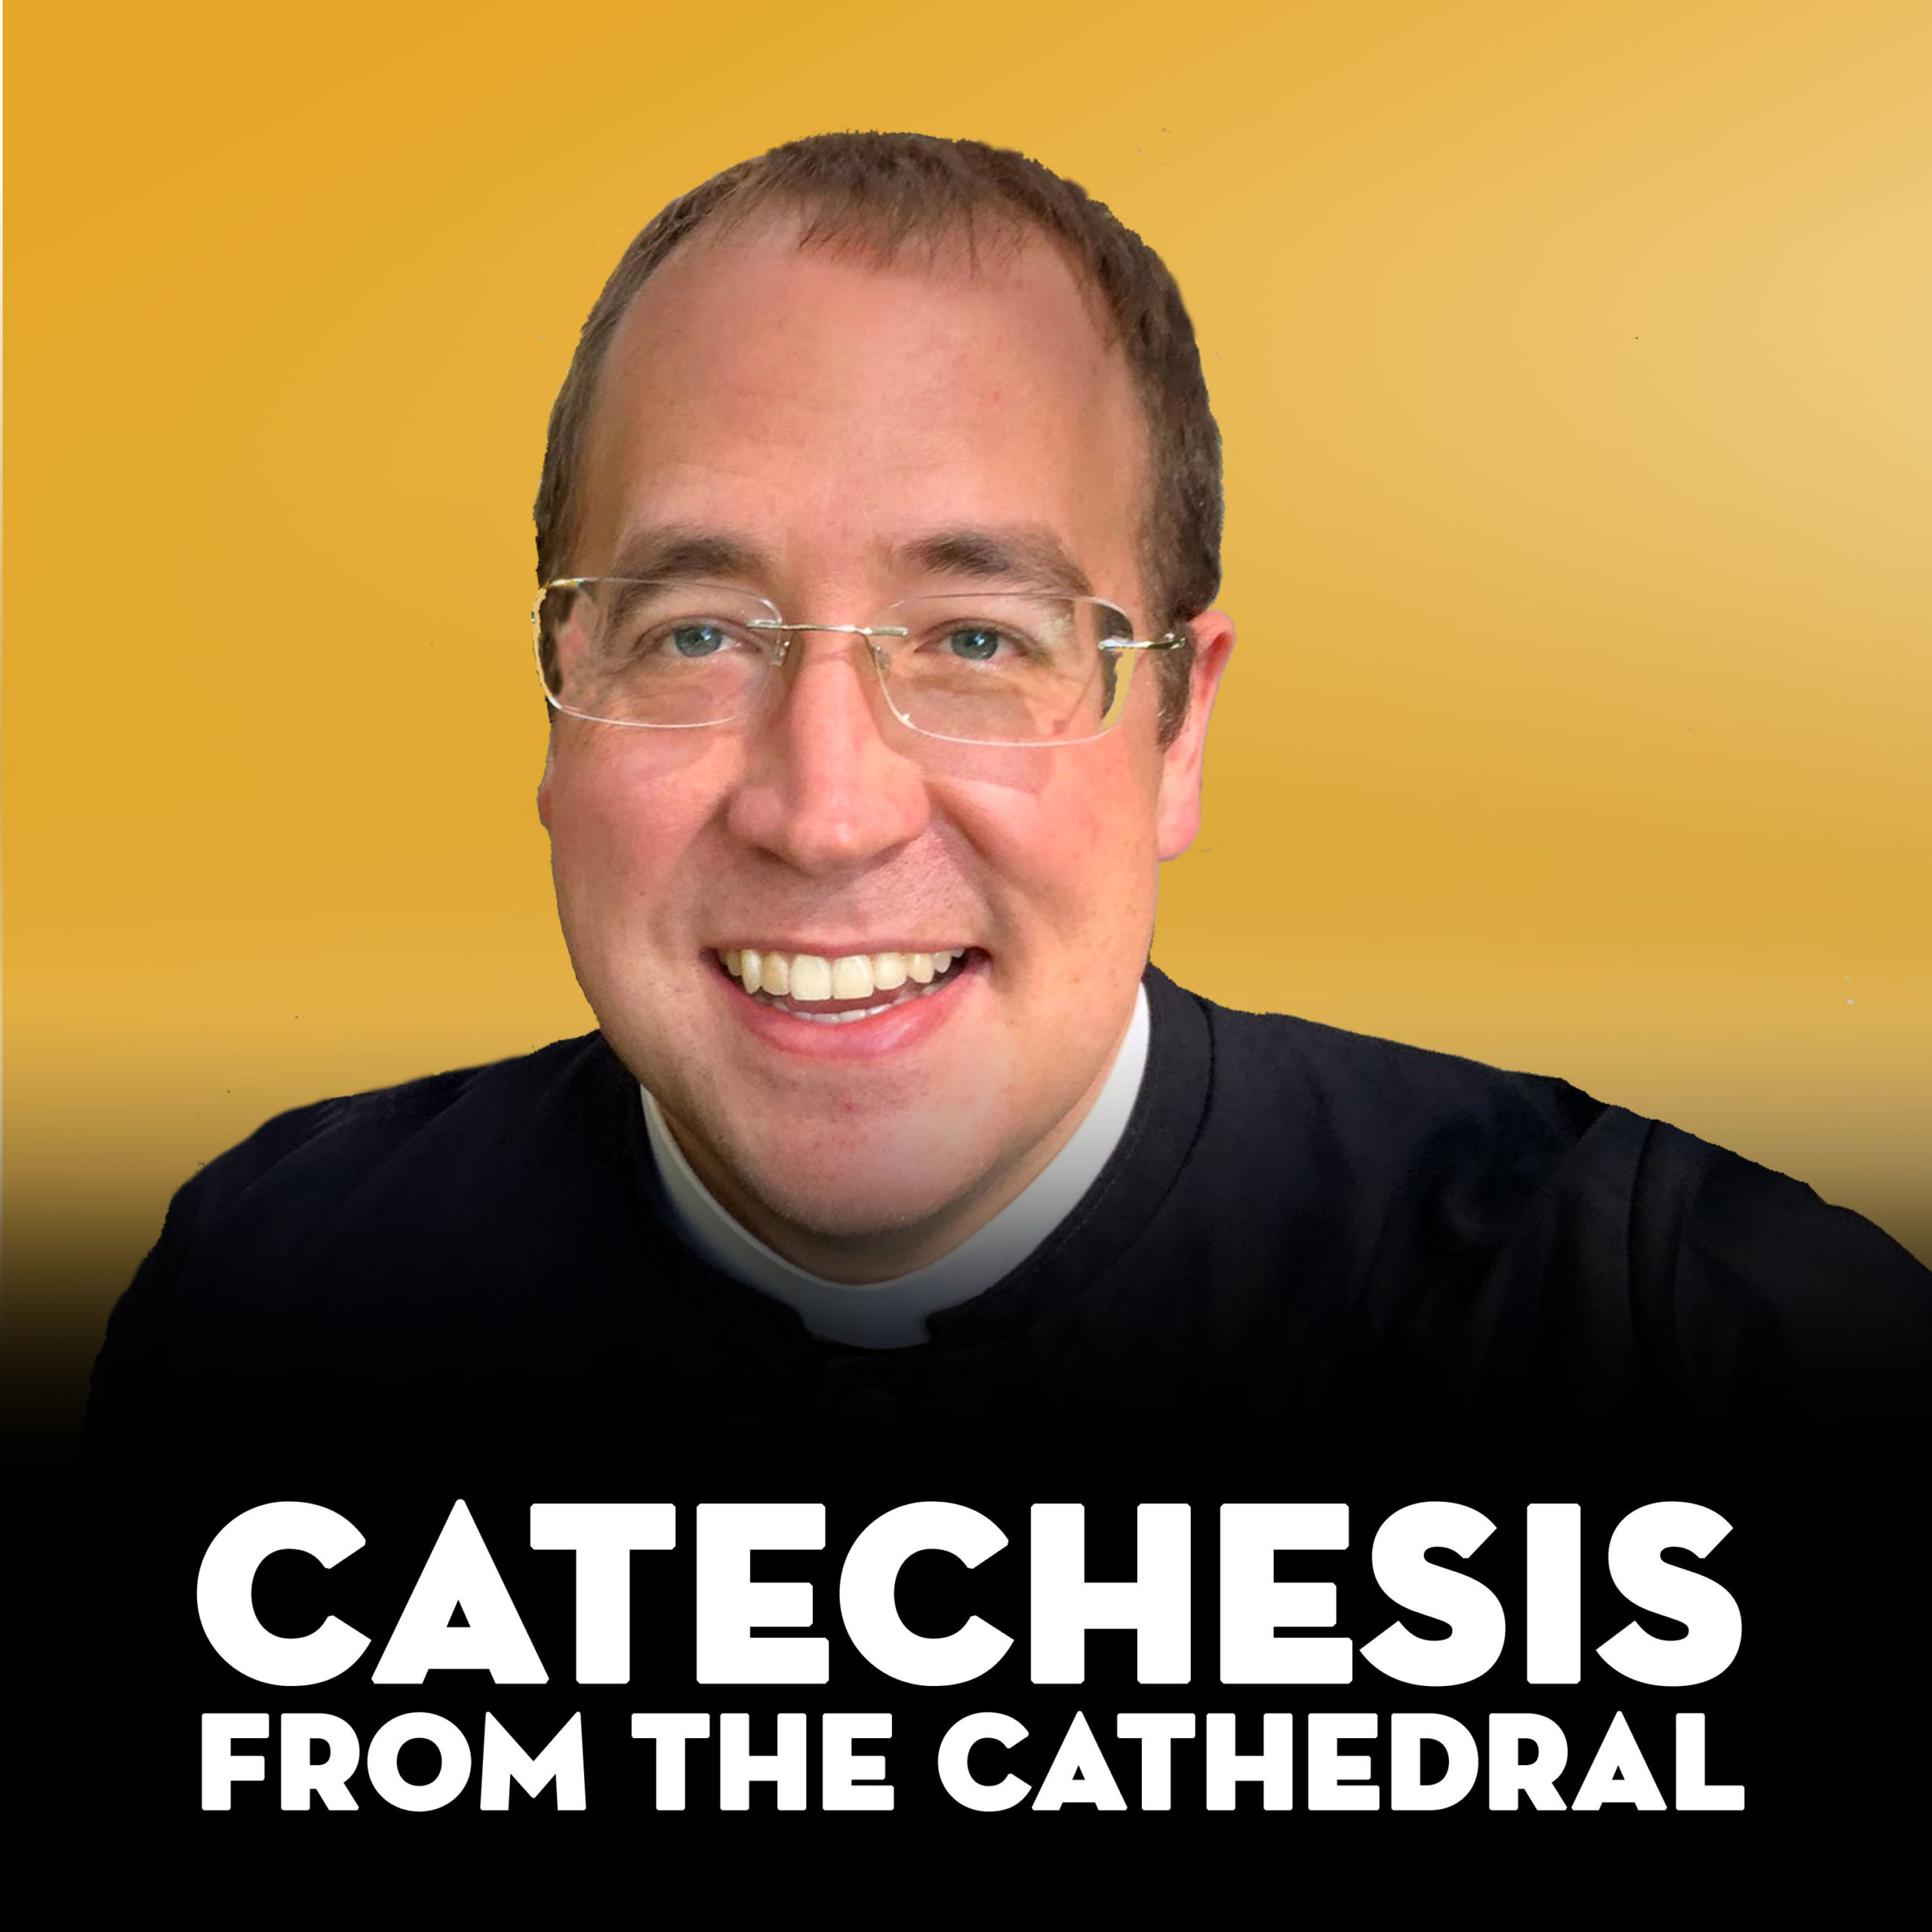 11/28/20-Catechesis From The Cathedral-Paragraph 2759ff- The Our Father